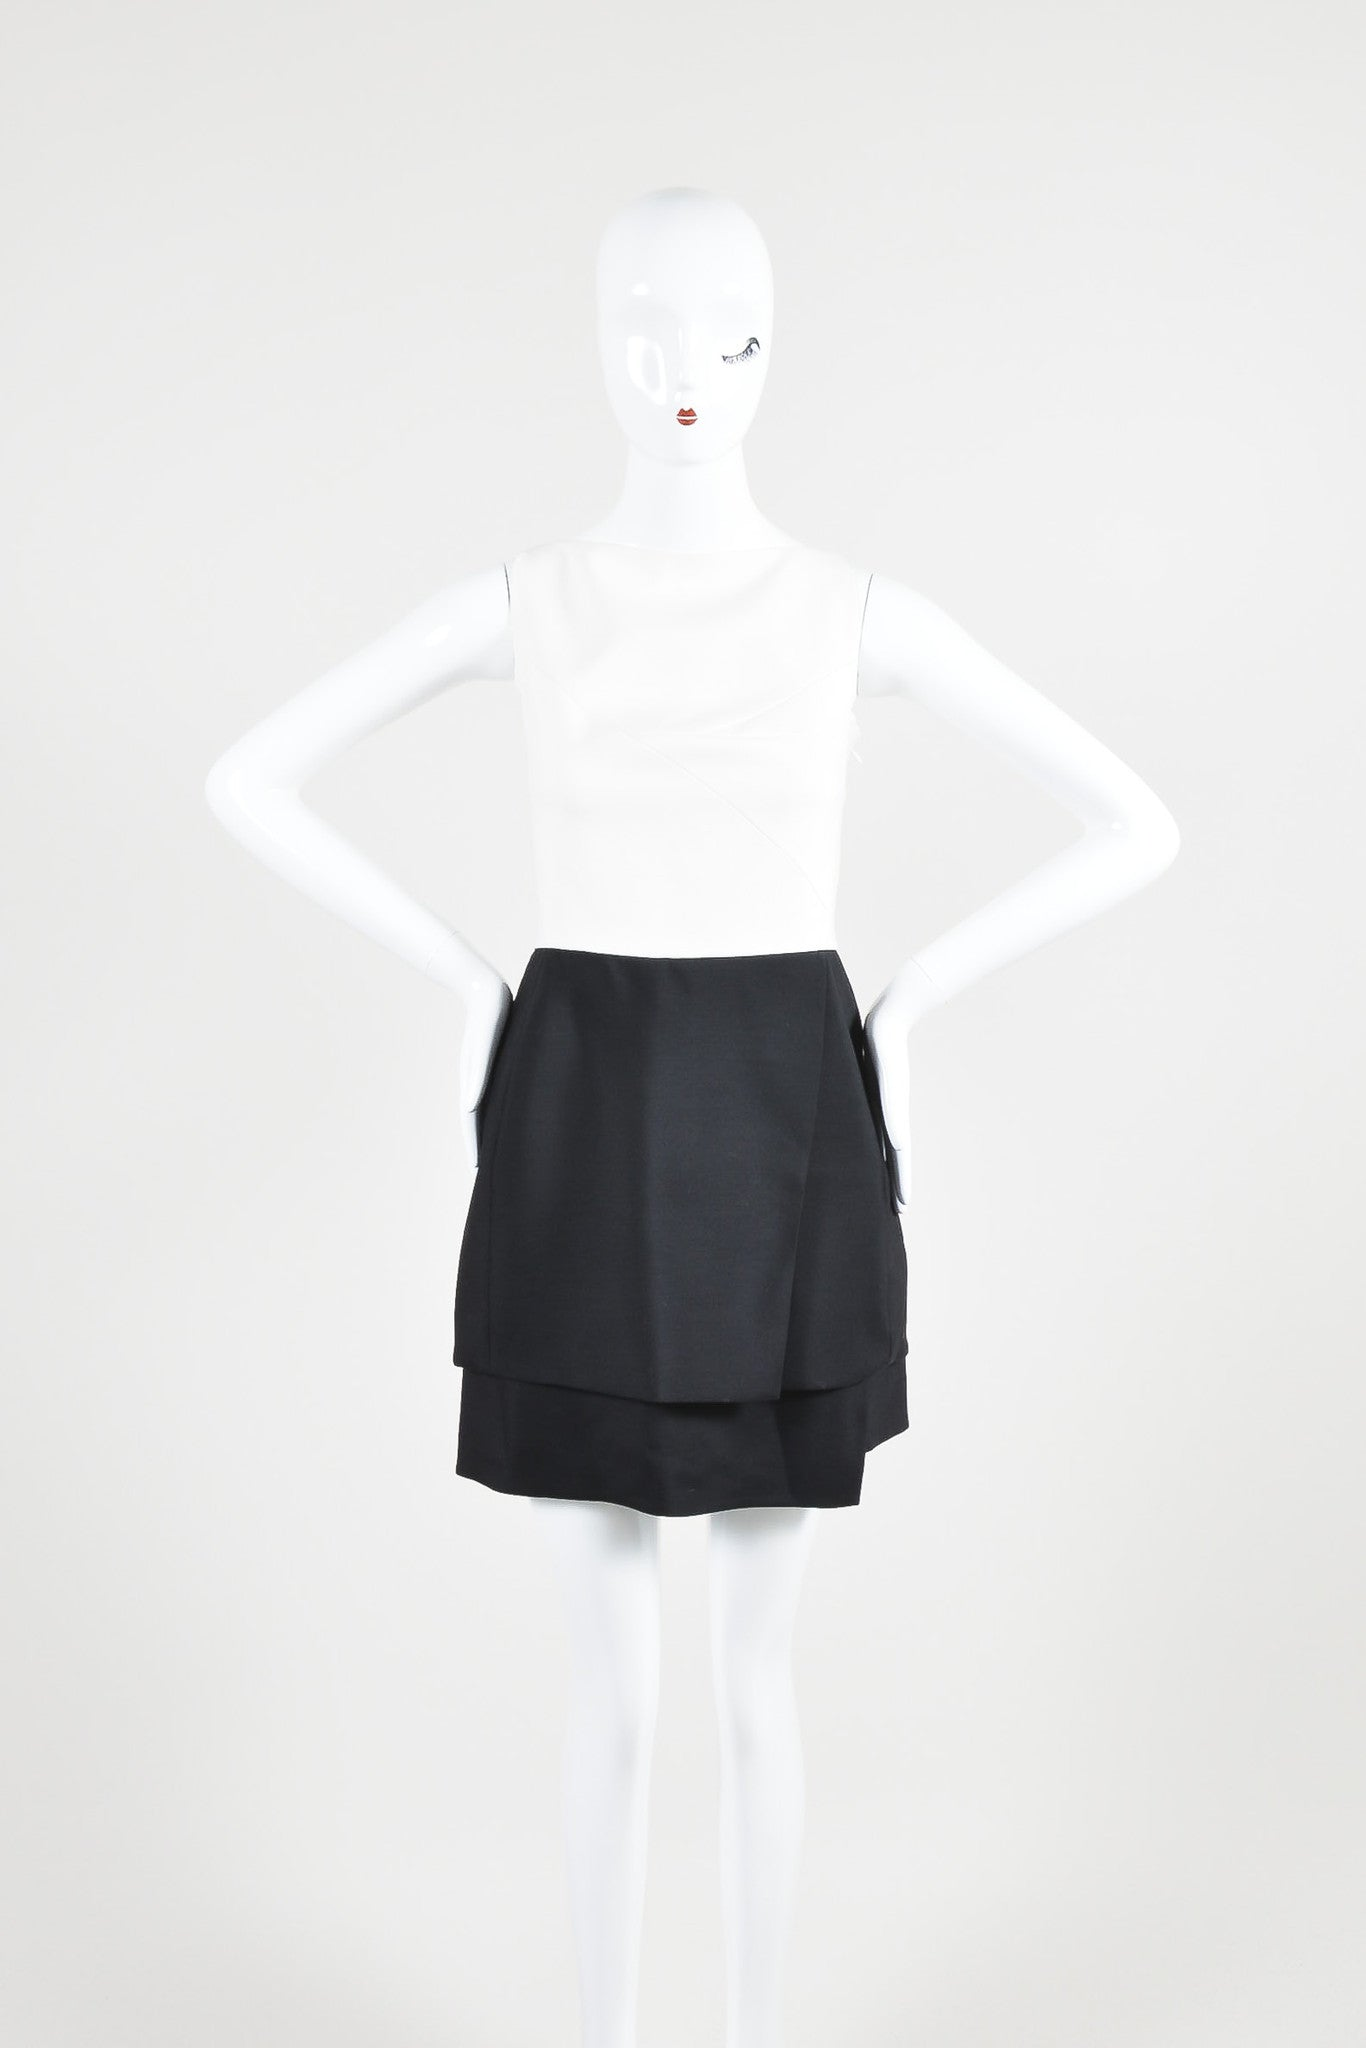 Narciso Rodriquez Black and White Wool and Silk Color Block Layered Dress Frontview